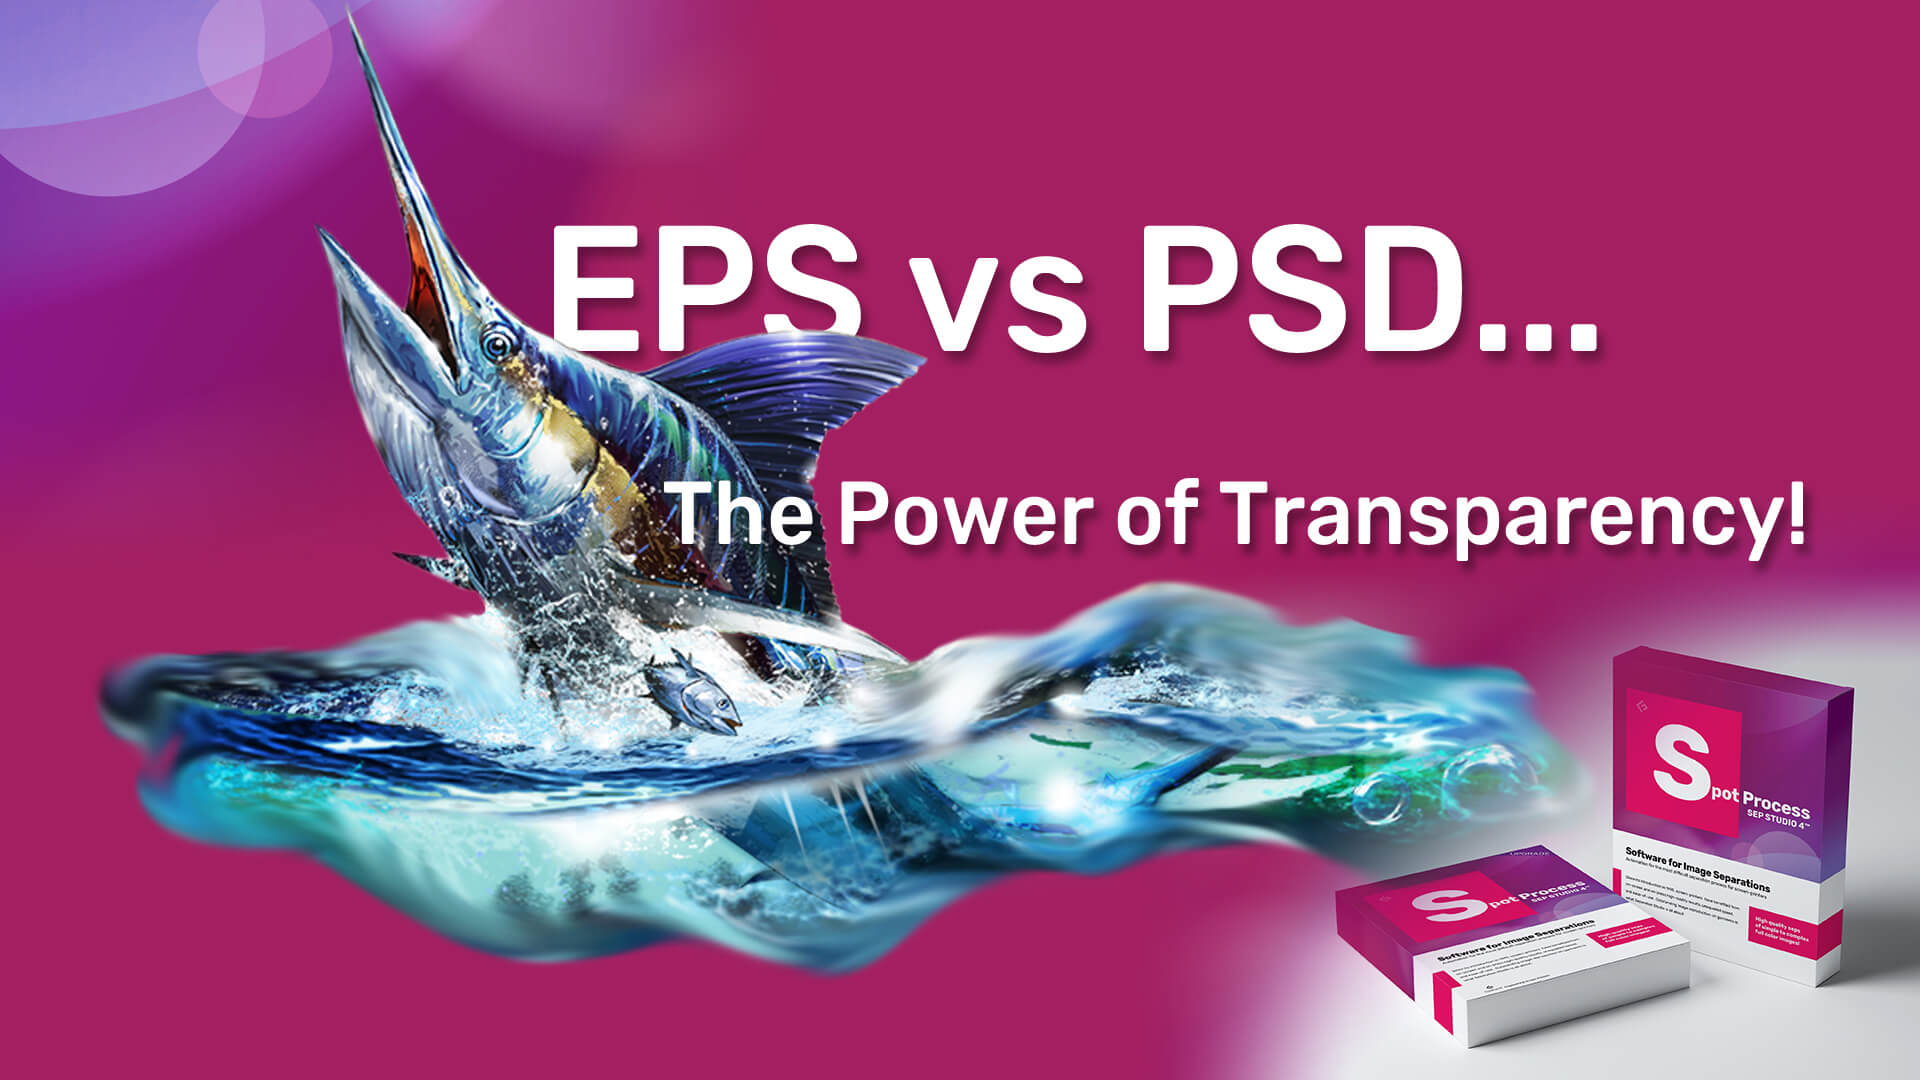 spss4-eps-vs-psd-flashy-youtube-2